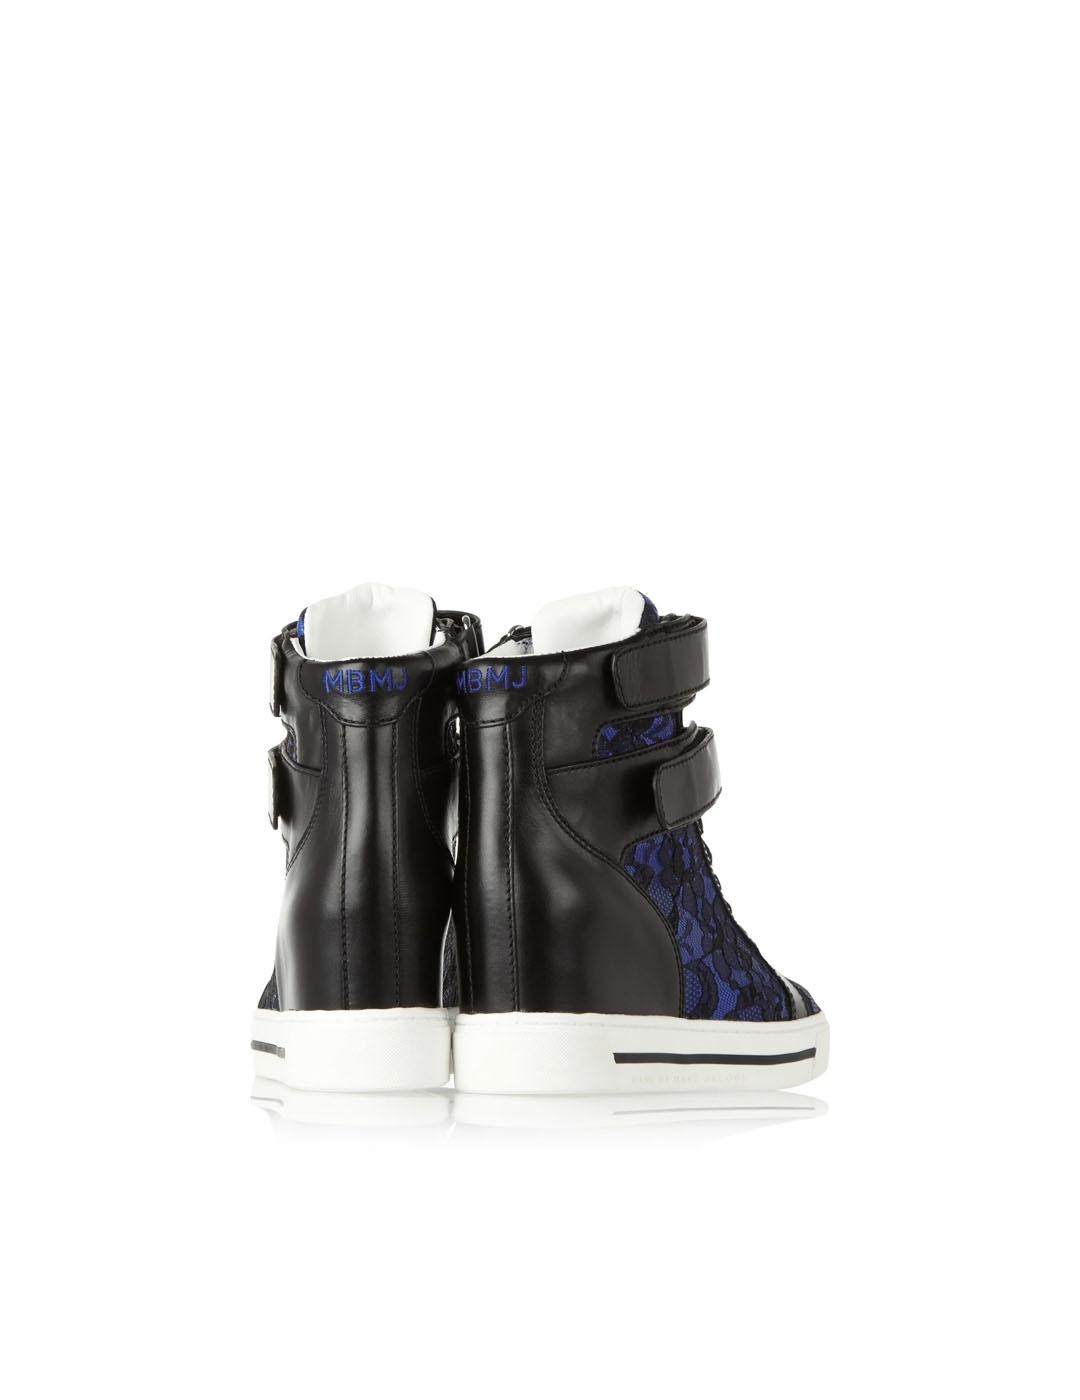 Sneakers Marc by Marc Jacobs azules cuero